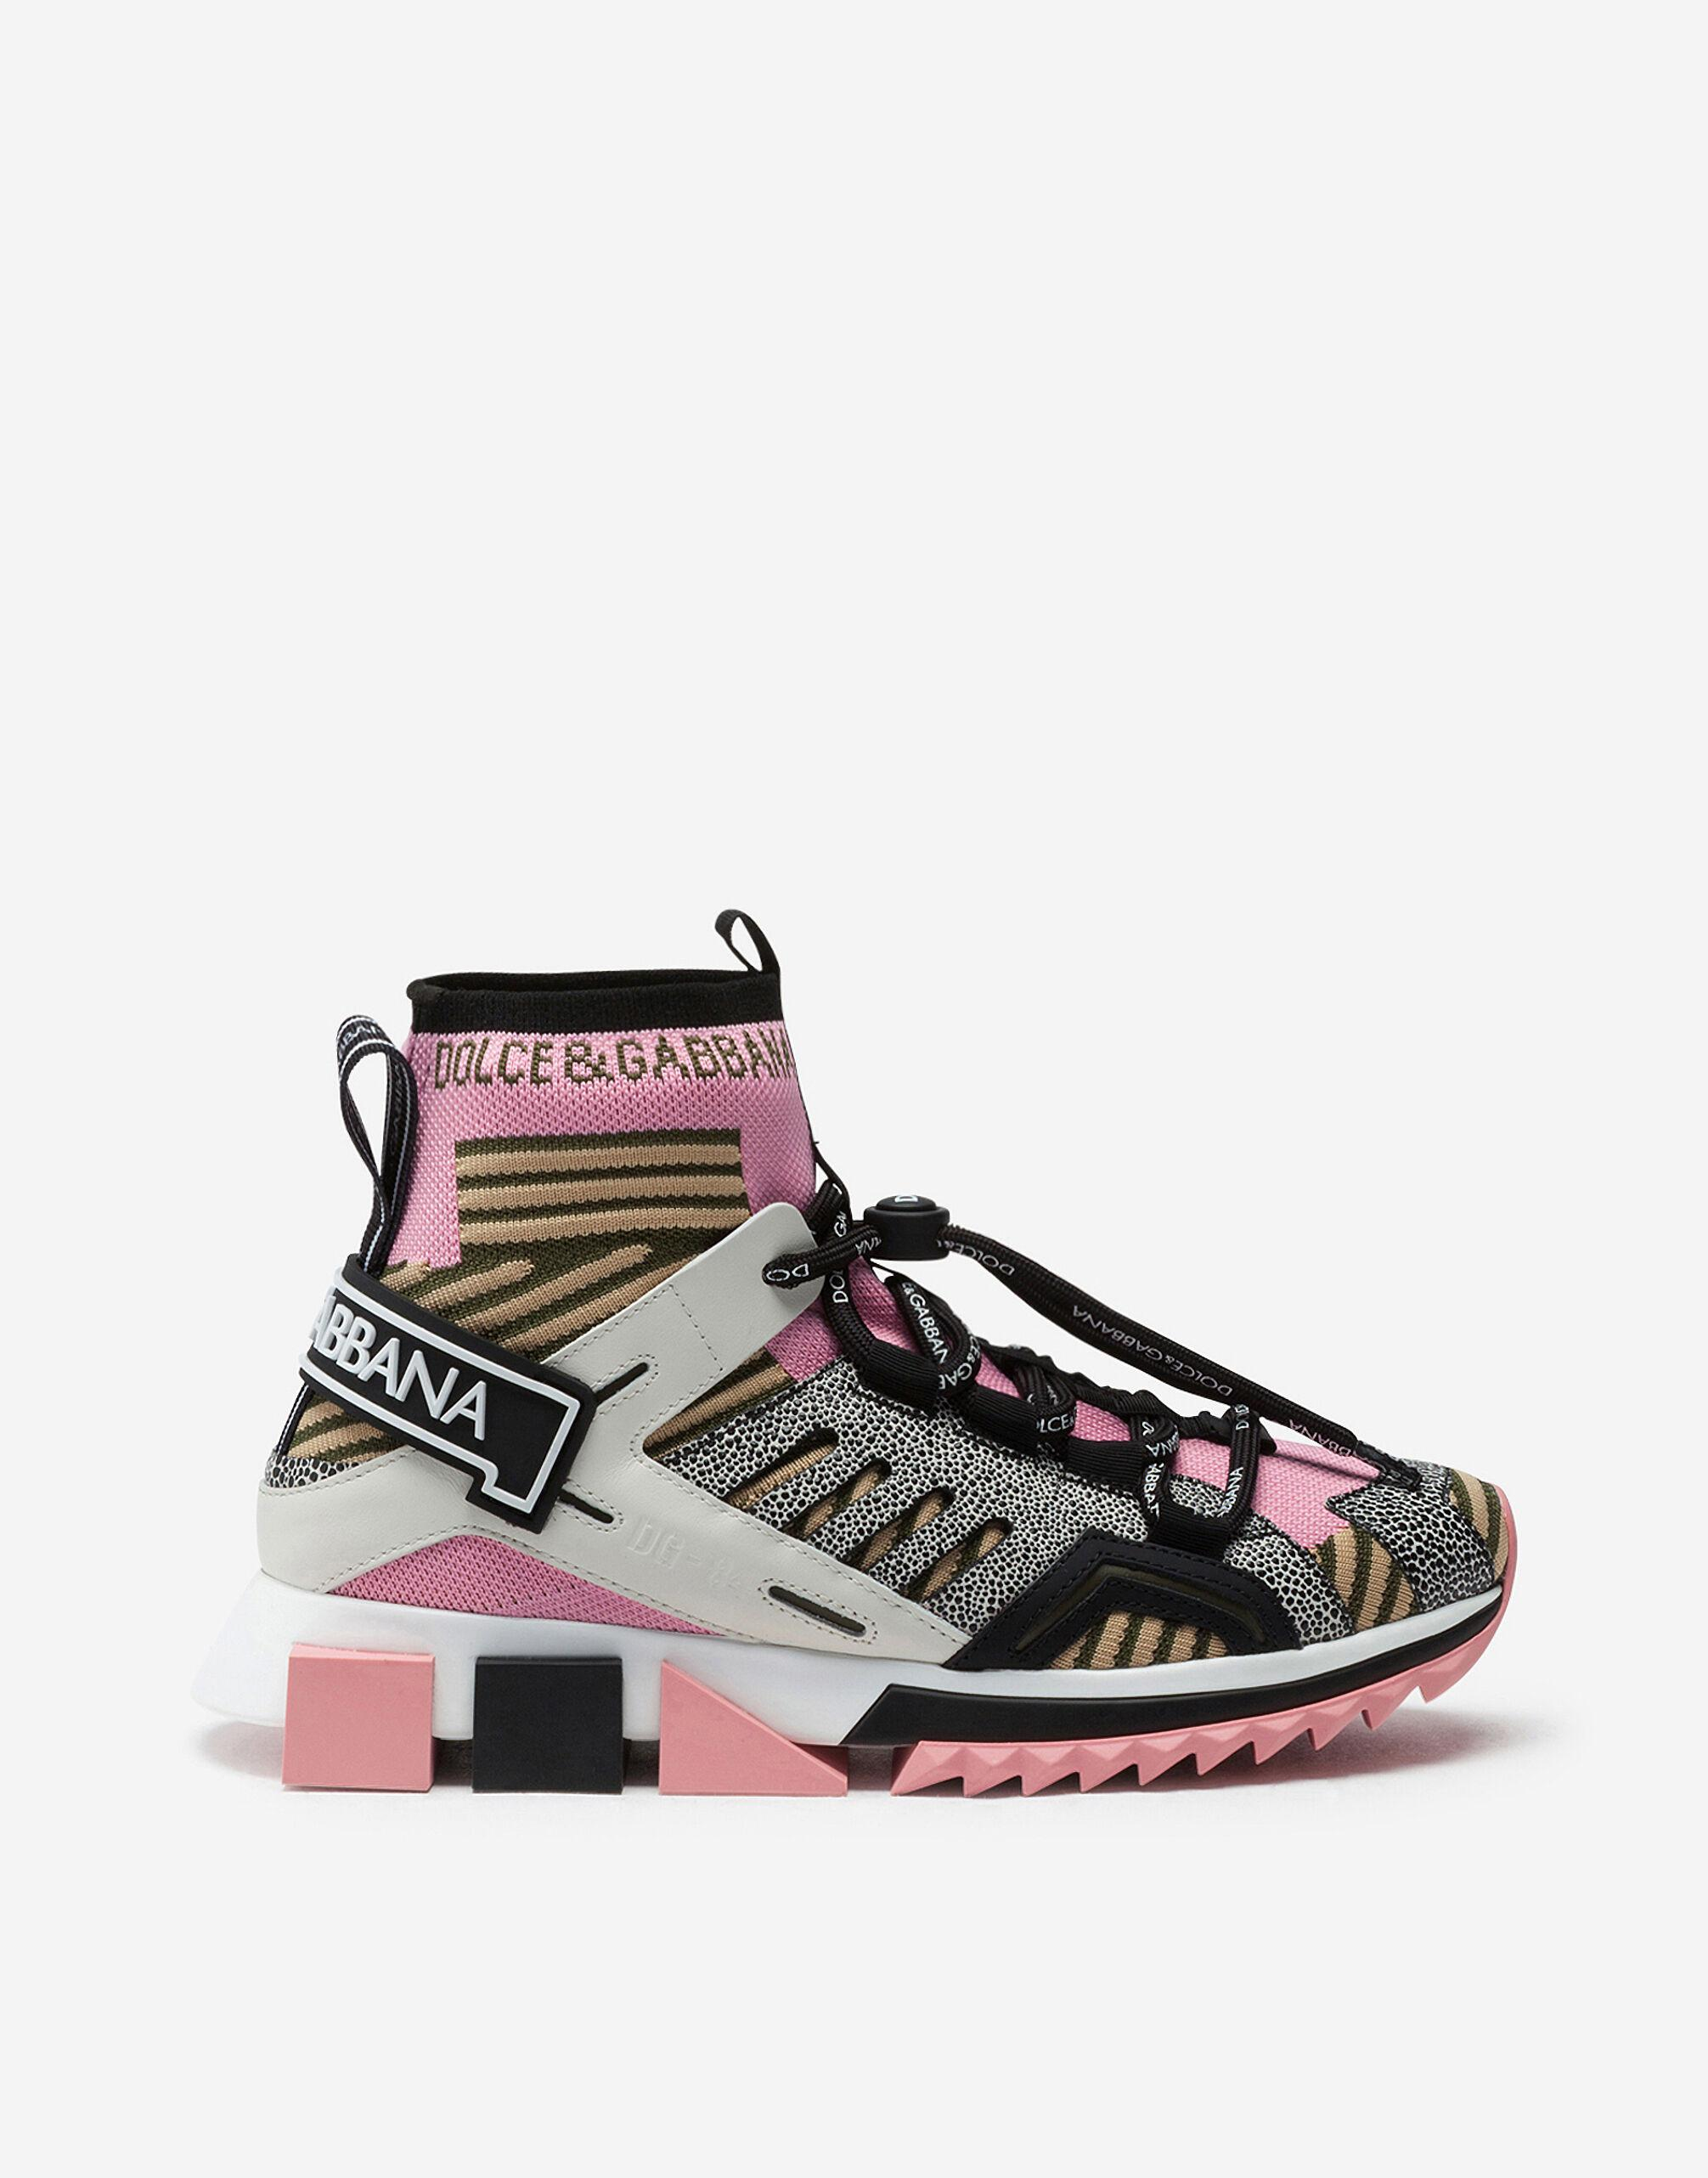 Sorrento high-top trekking sneakers in multi-colored mixed materials